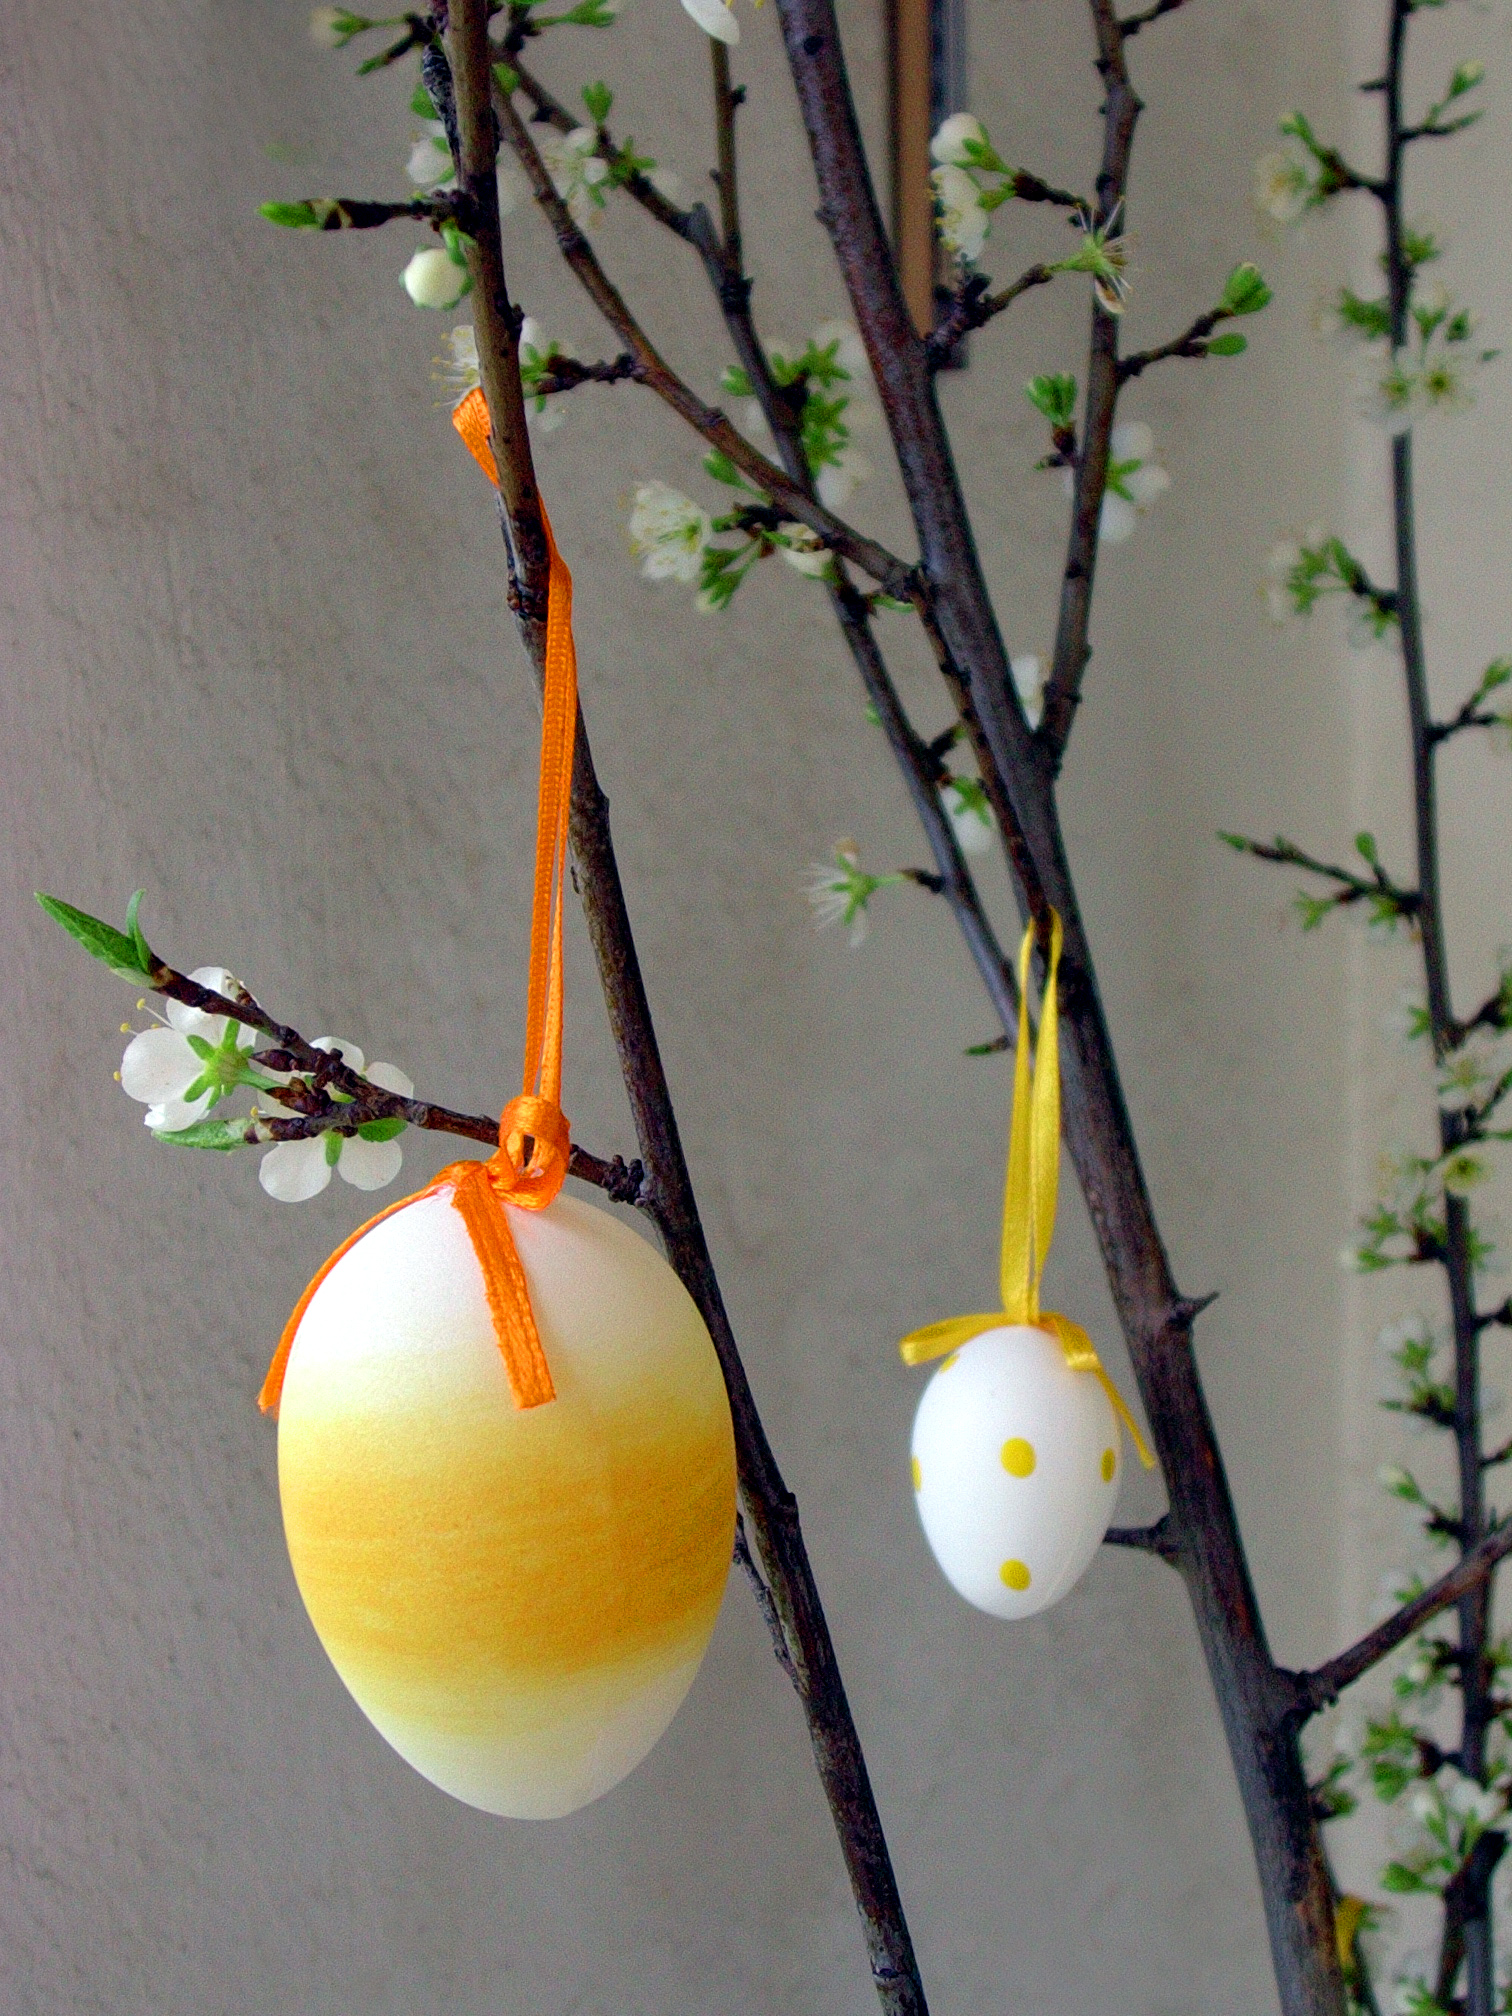 Easter Egg Decoration, Branch, Celebration, Cherry, Decoration, HQ Photo